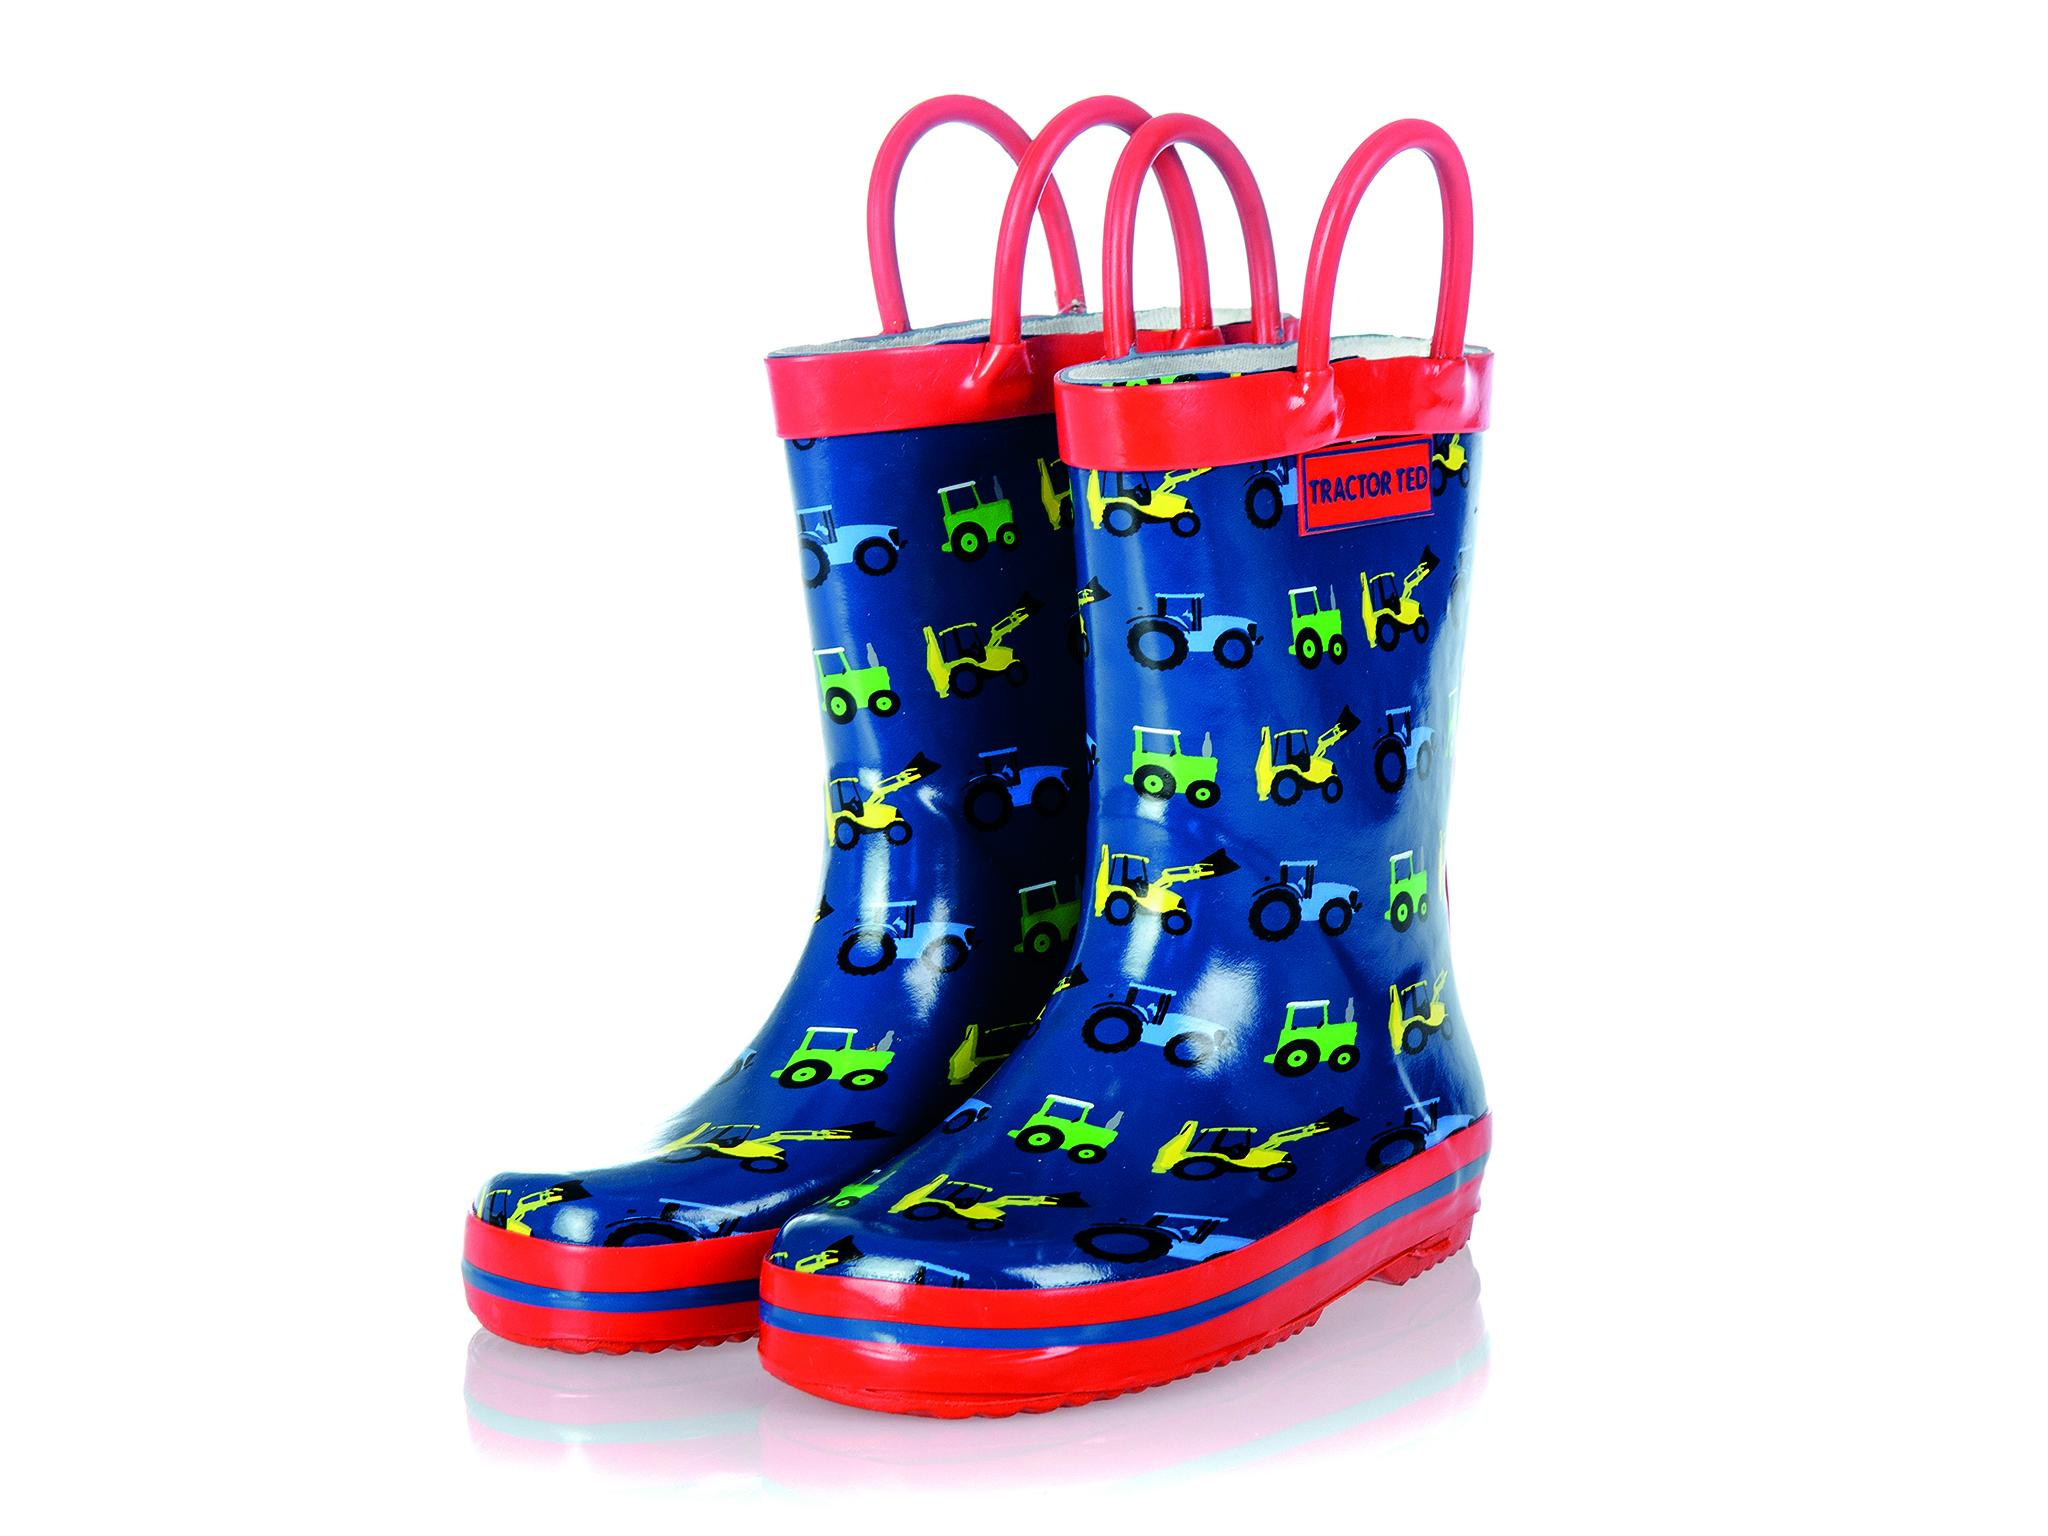 77f4a6e6c9e70 11 best kids' wellies | The Independent